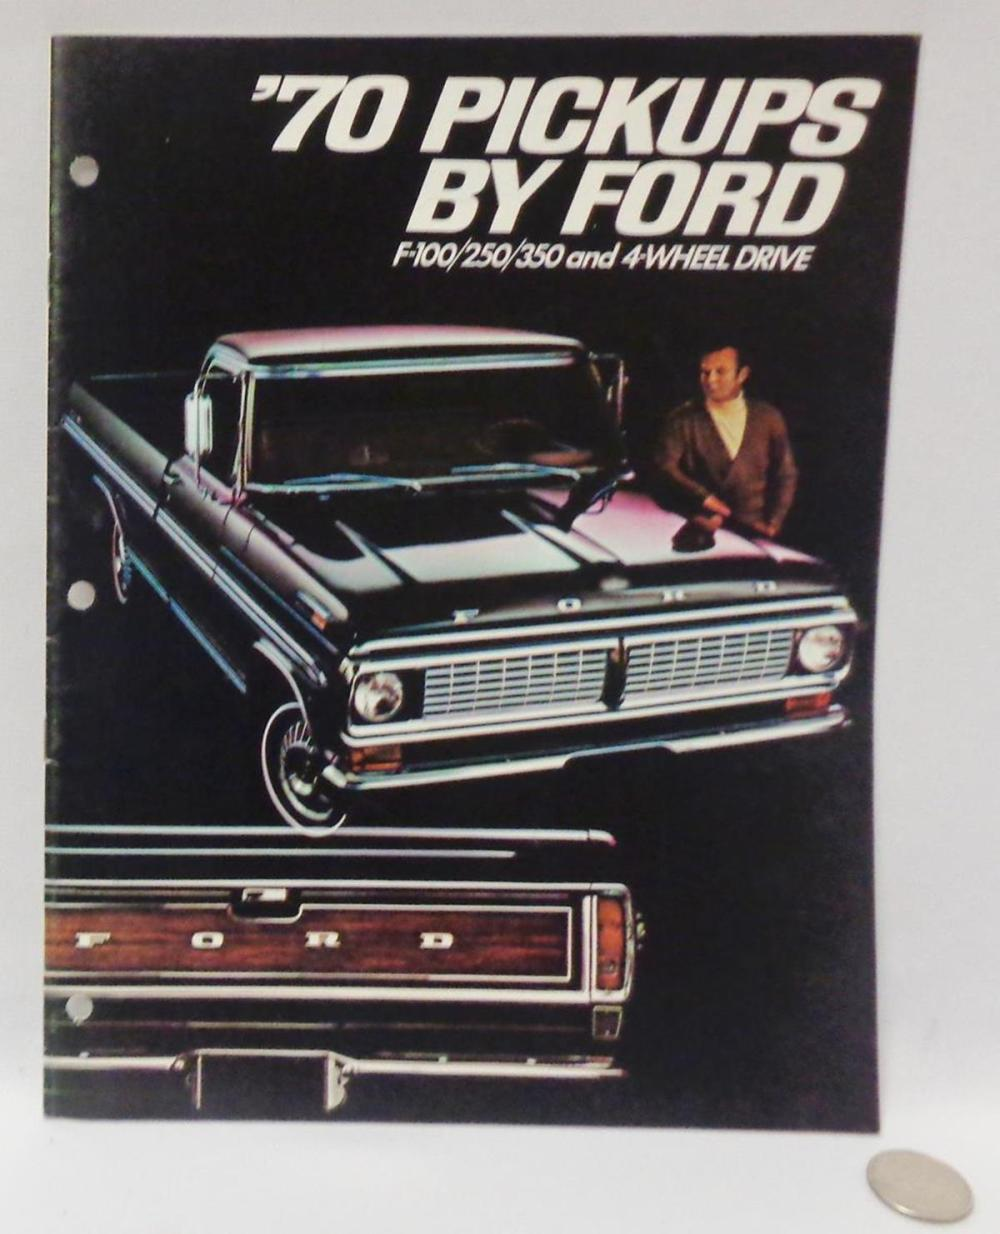 Vintage 1970 Pickup By Ford Vehicle Brochure